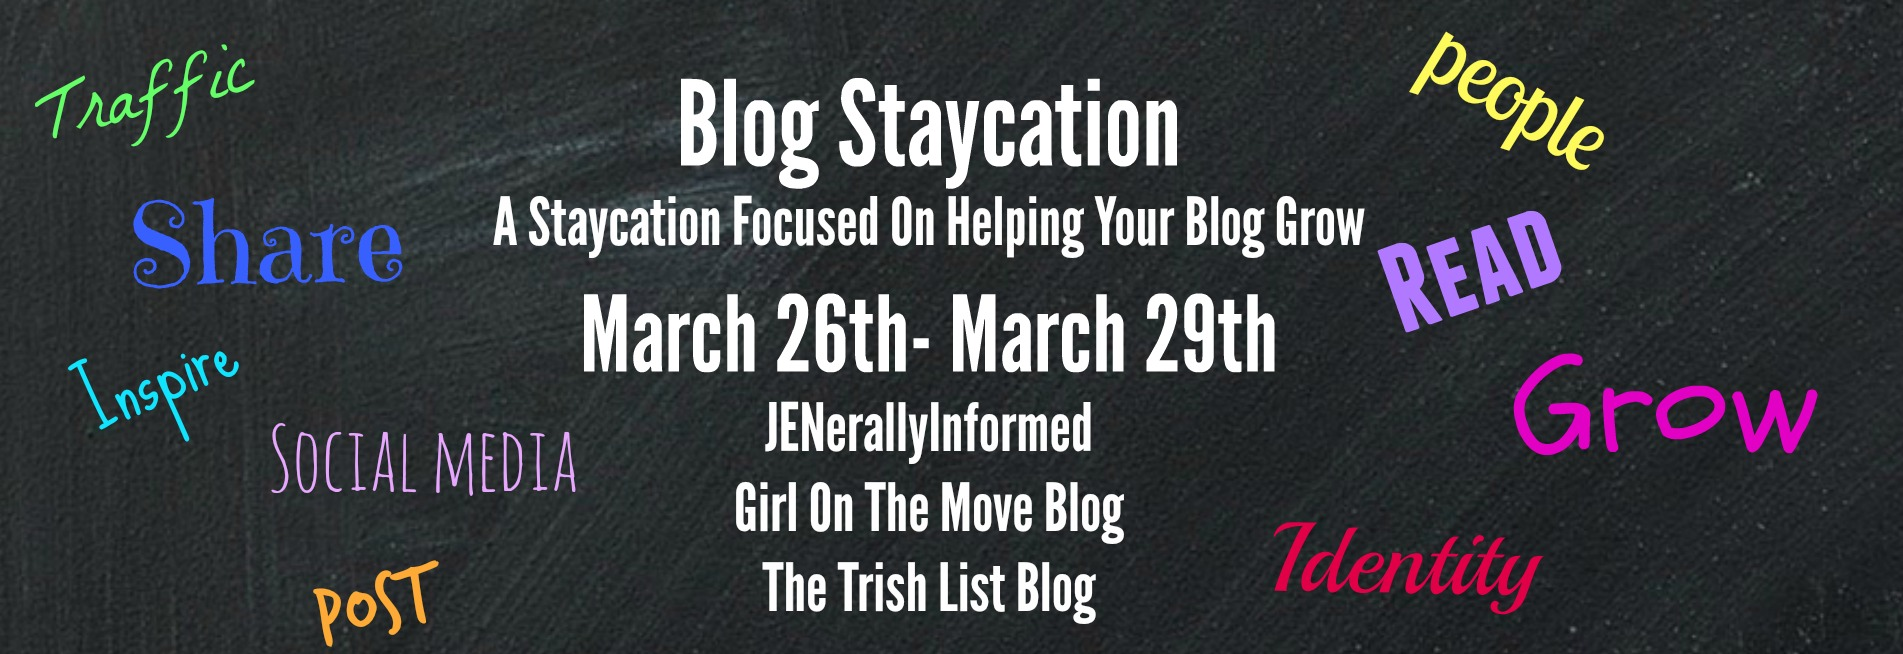 A Blog Staycation to help you catch up on your blogging to do list